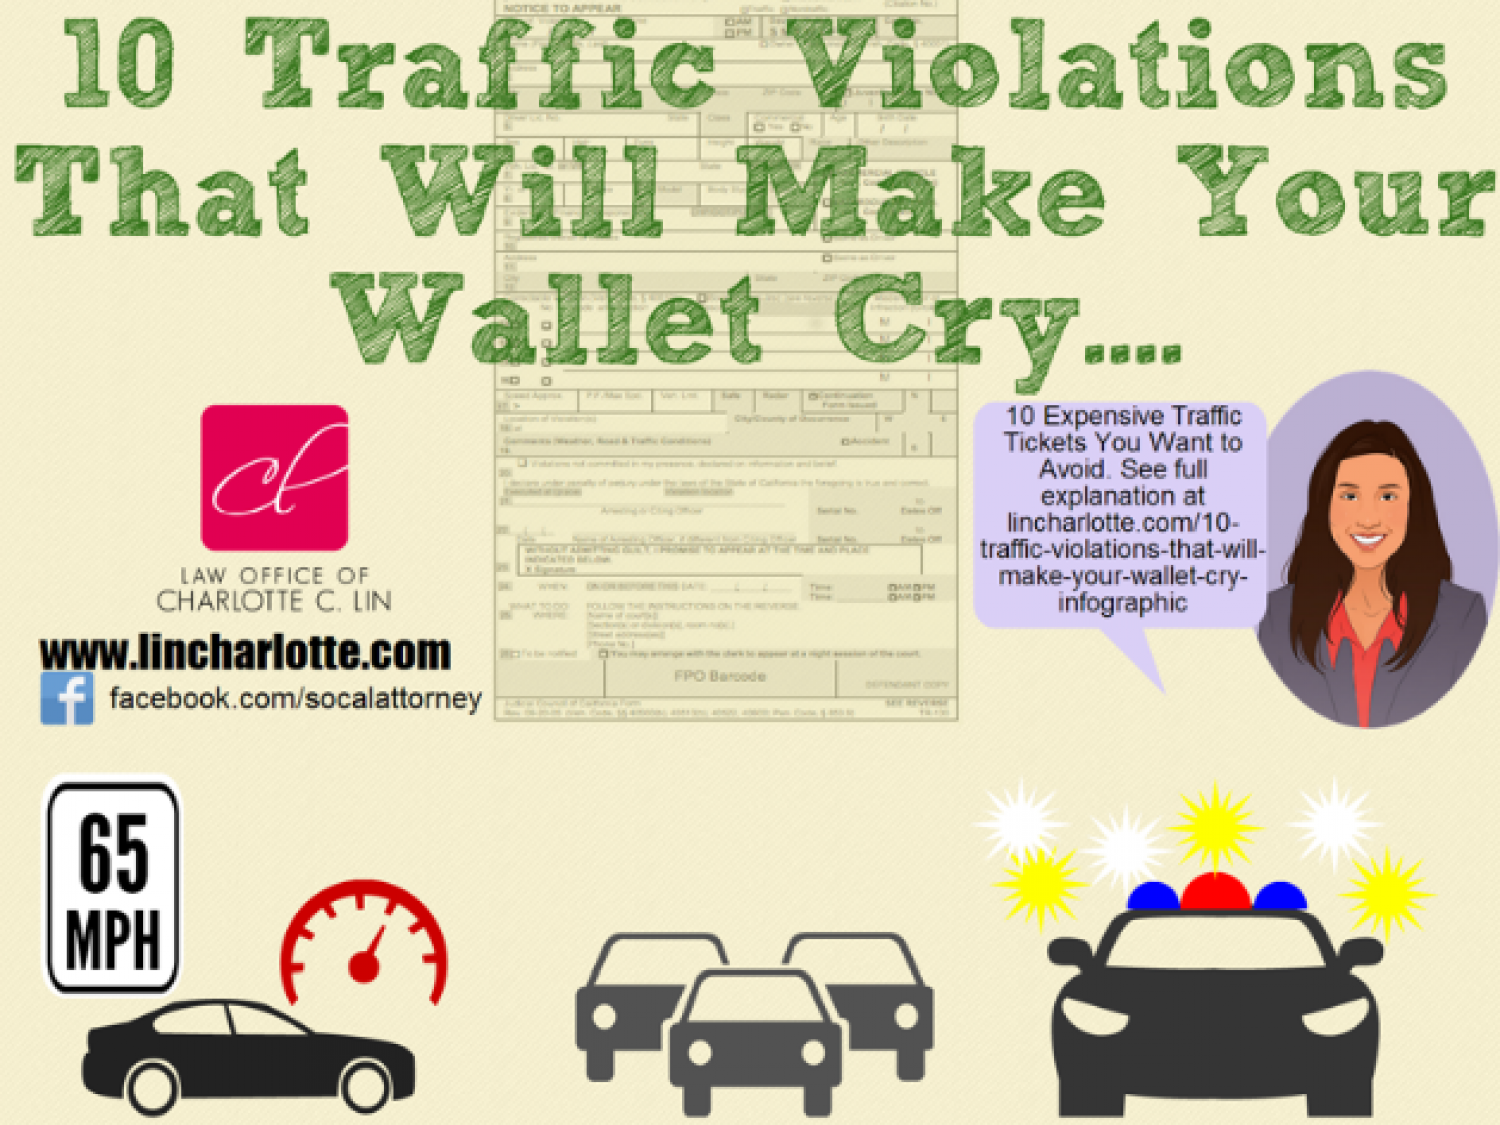 10 California Traffic Violations That Will Make Your Wallet Cry Infographic